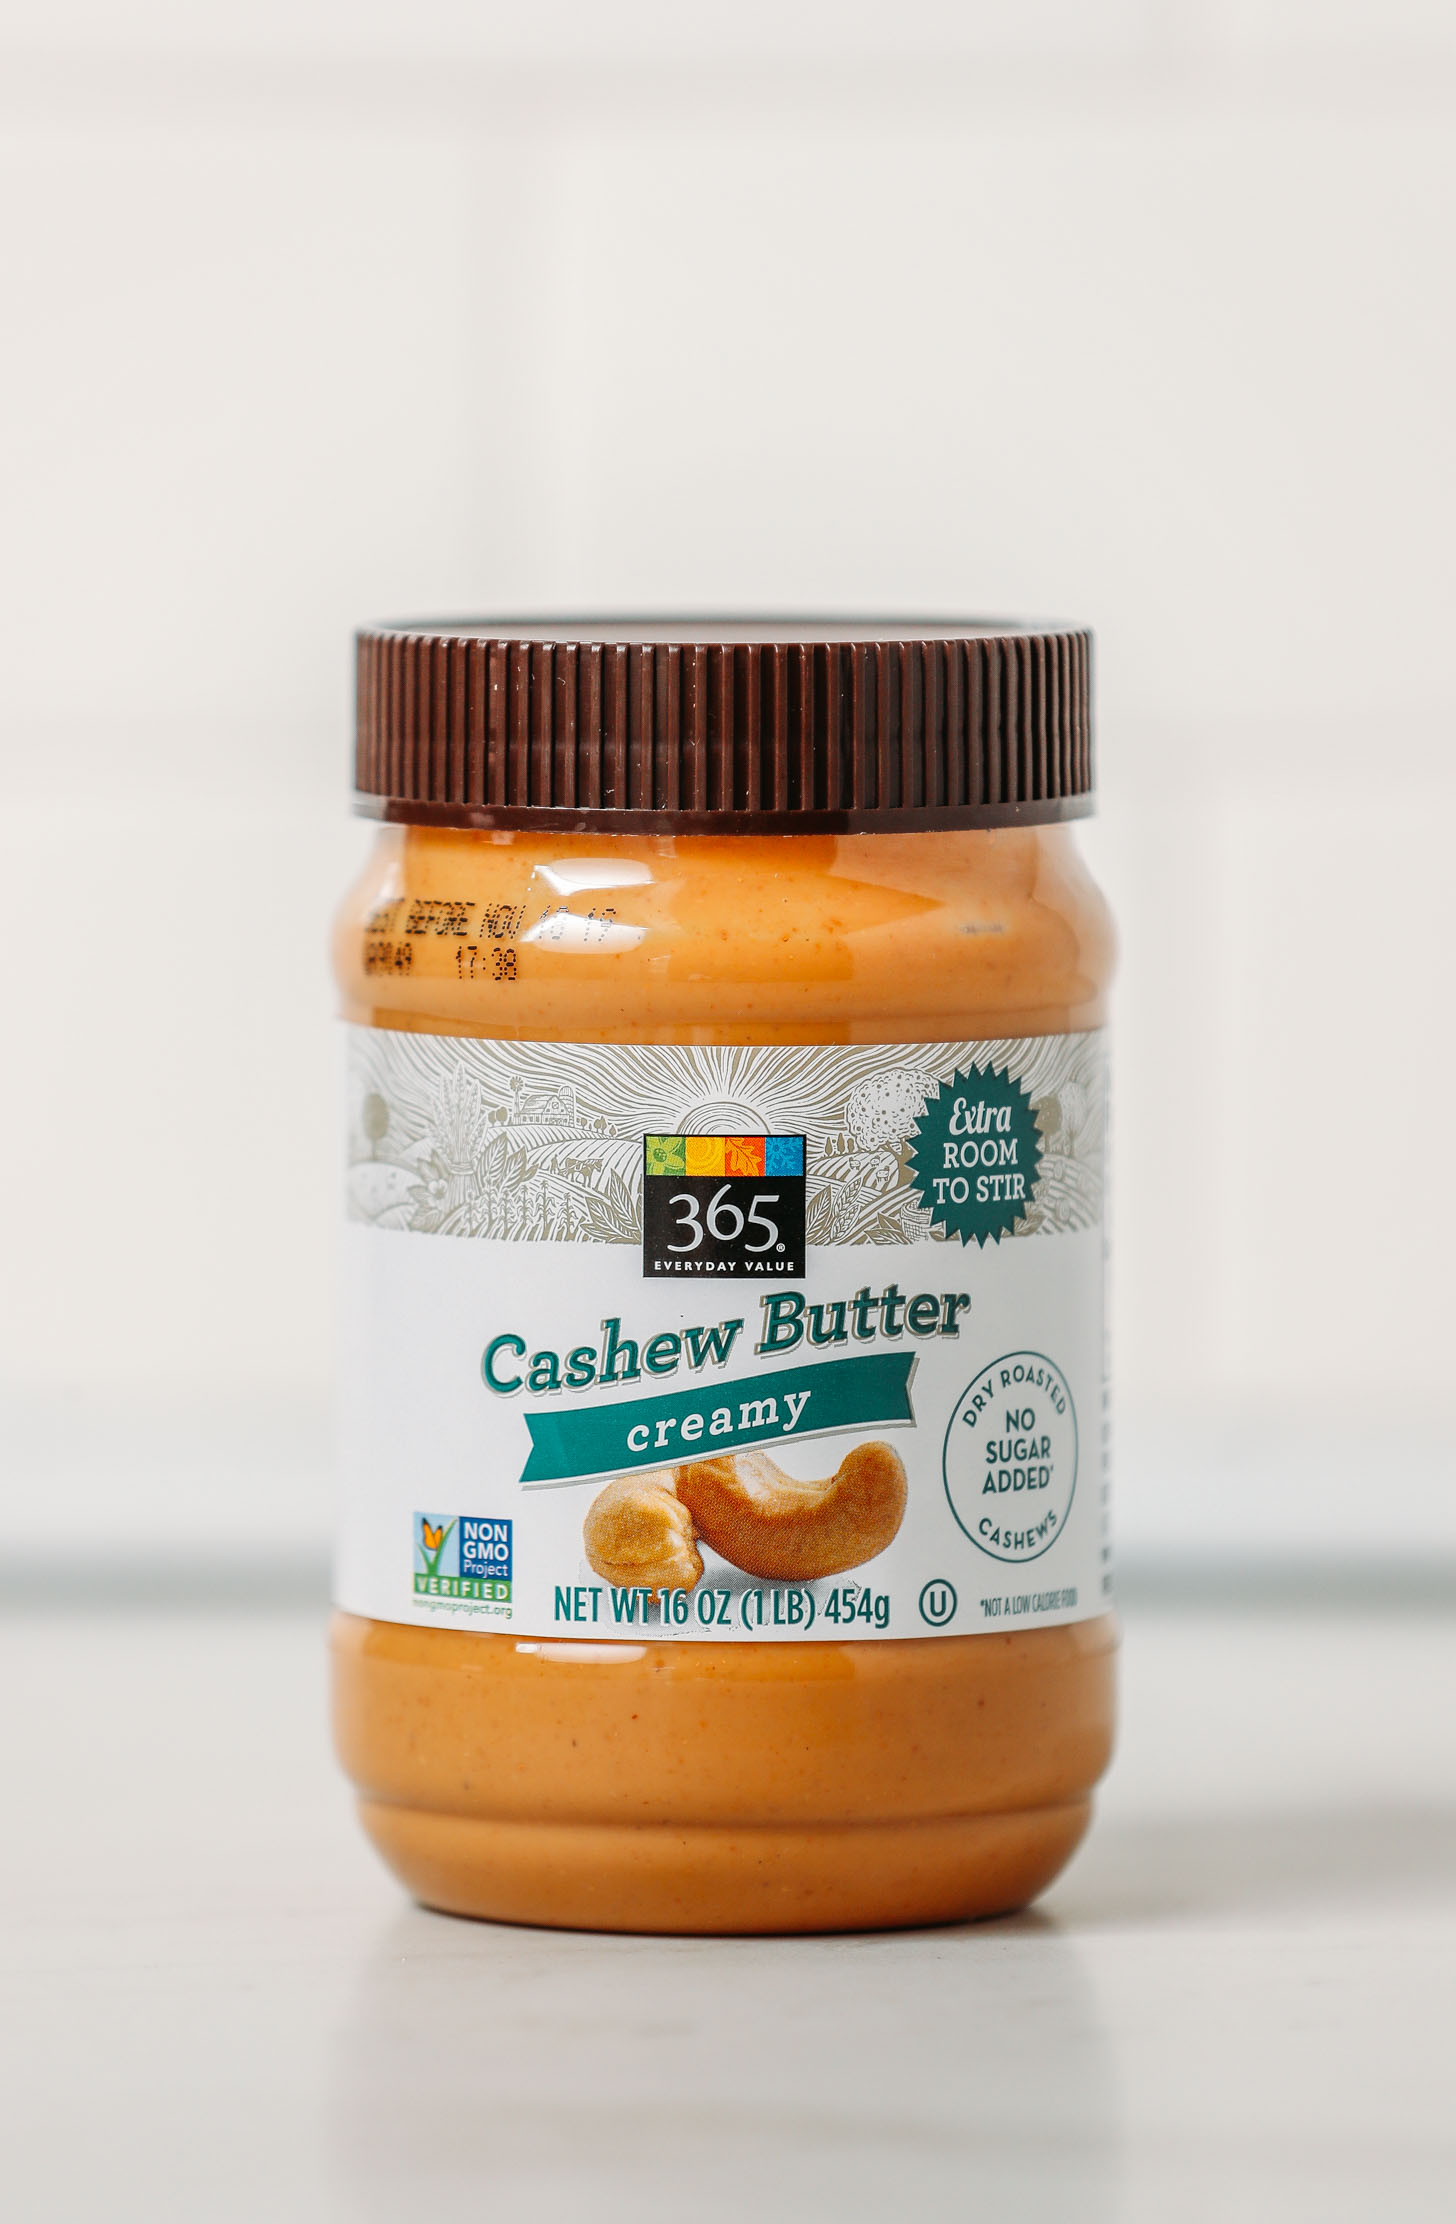 Jar of Whole Foods 365 Cashew Butter as part of our unbiased review of popular cashew butter brands